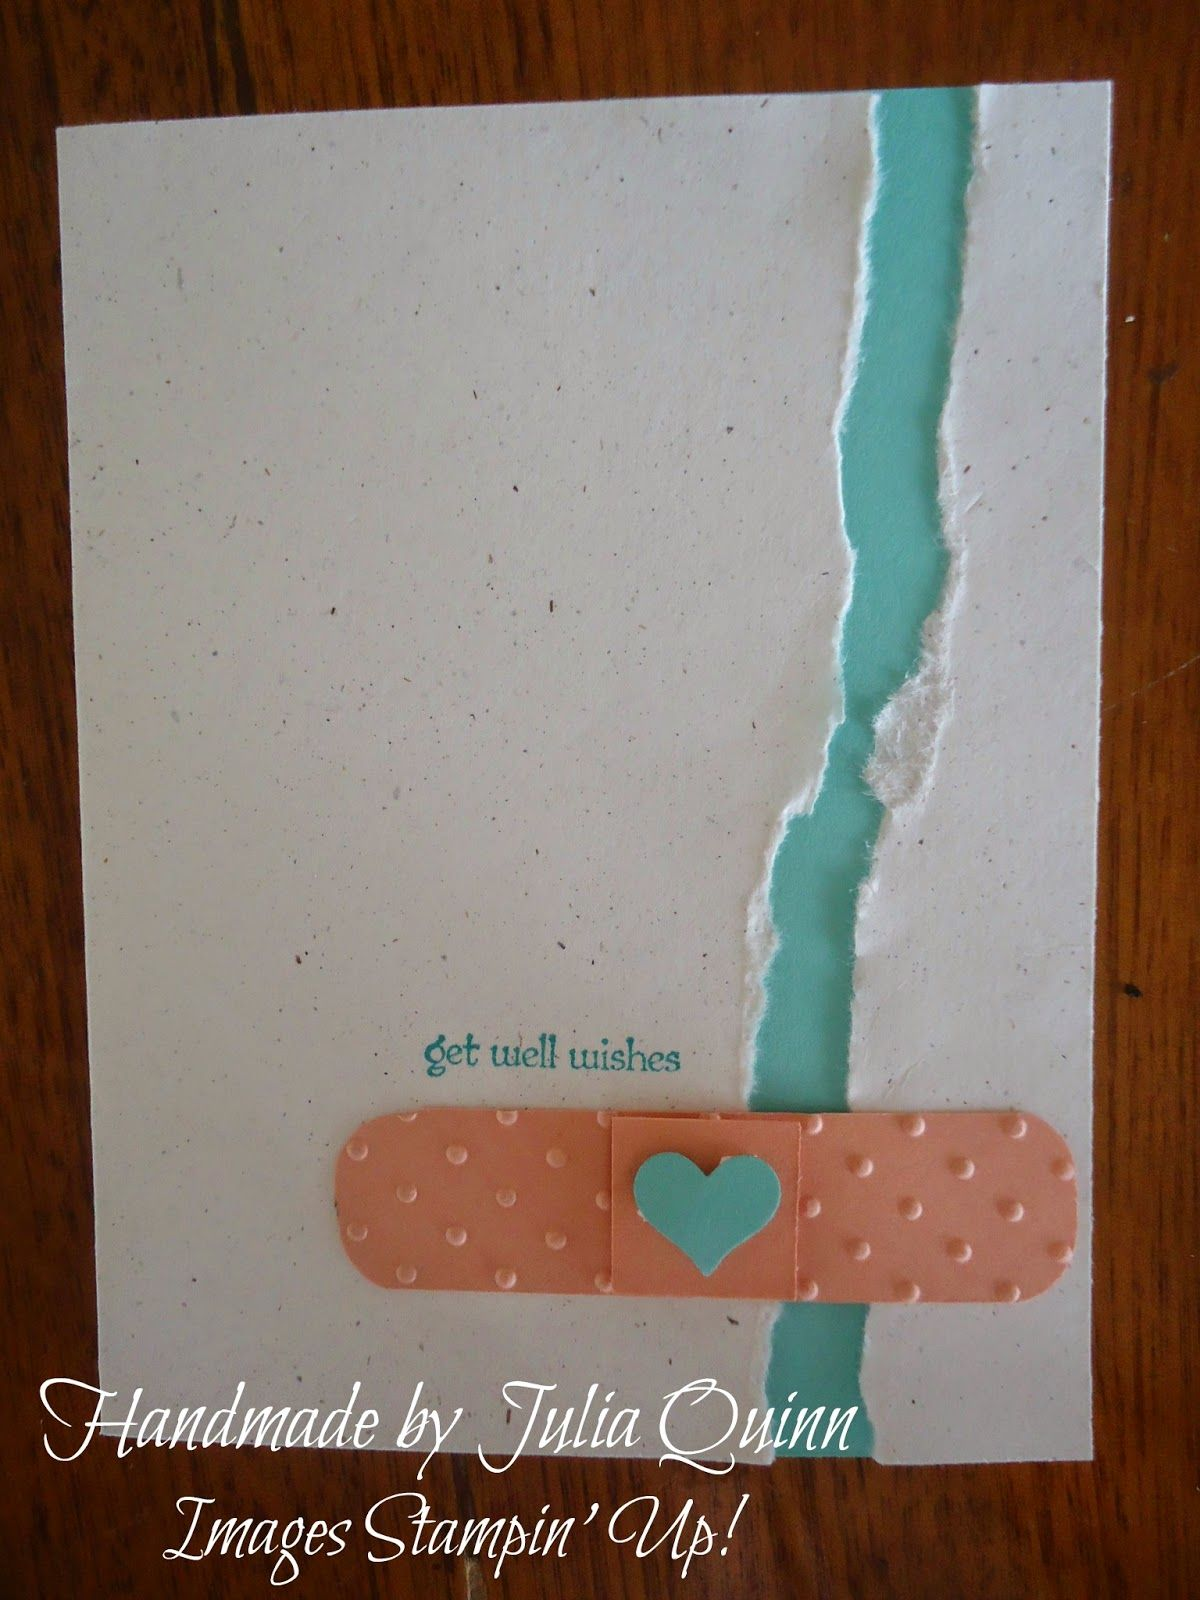 handmade by julia quinn - independent stampin' up! demonstrator: get